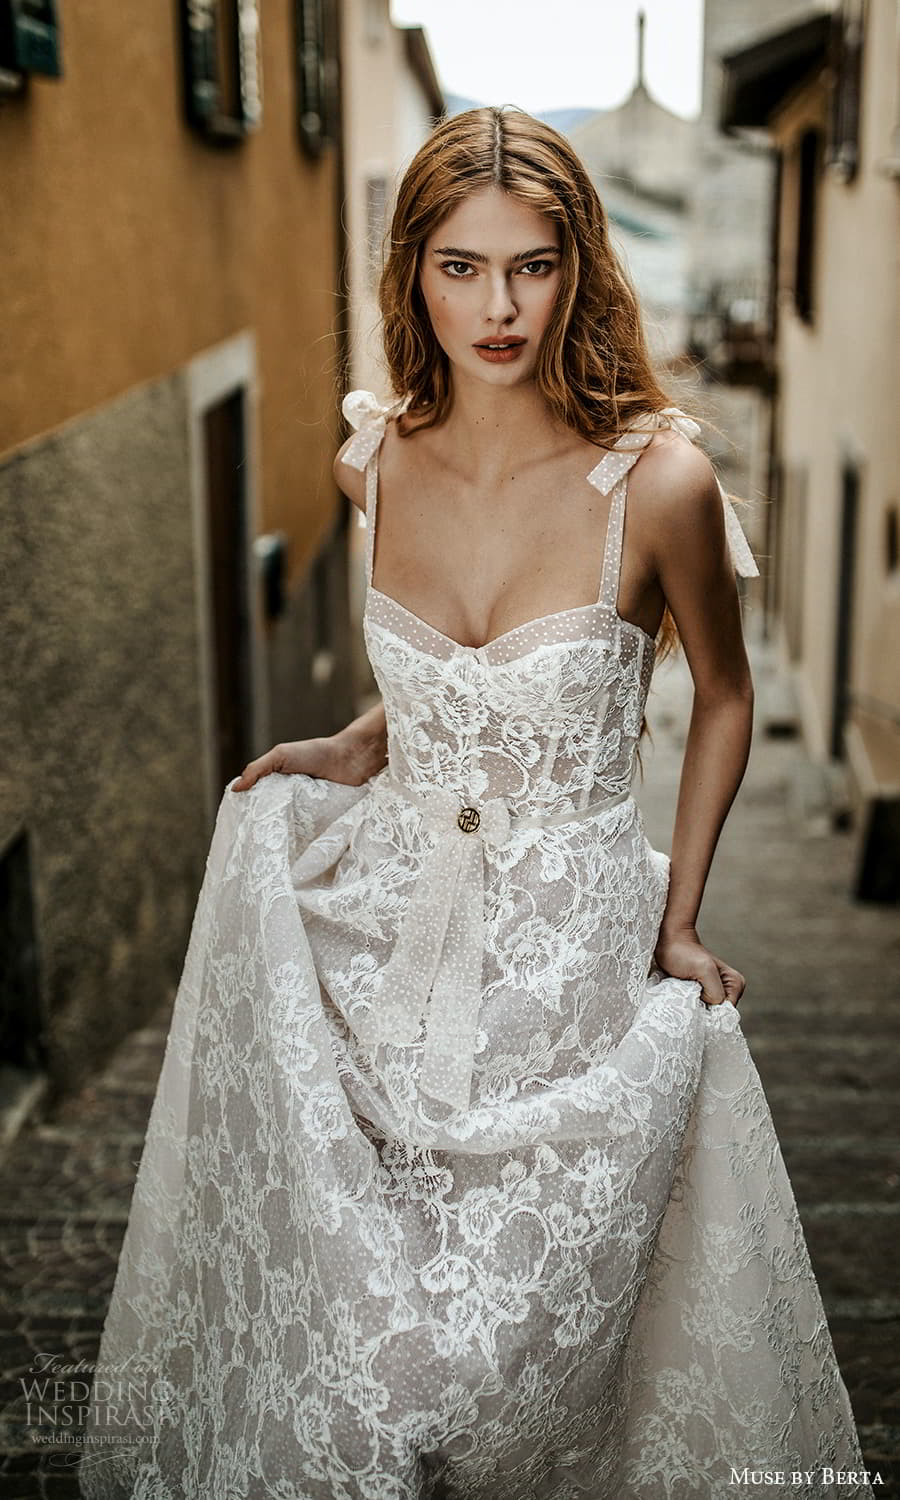 muse by berta spring 2022 bridal sleevelss straps semi sweetheart neckline fully embellished lace a line ball gown wedding dress chapel train (8) zv